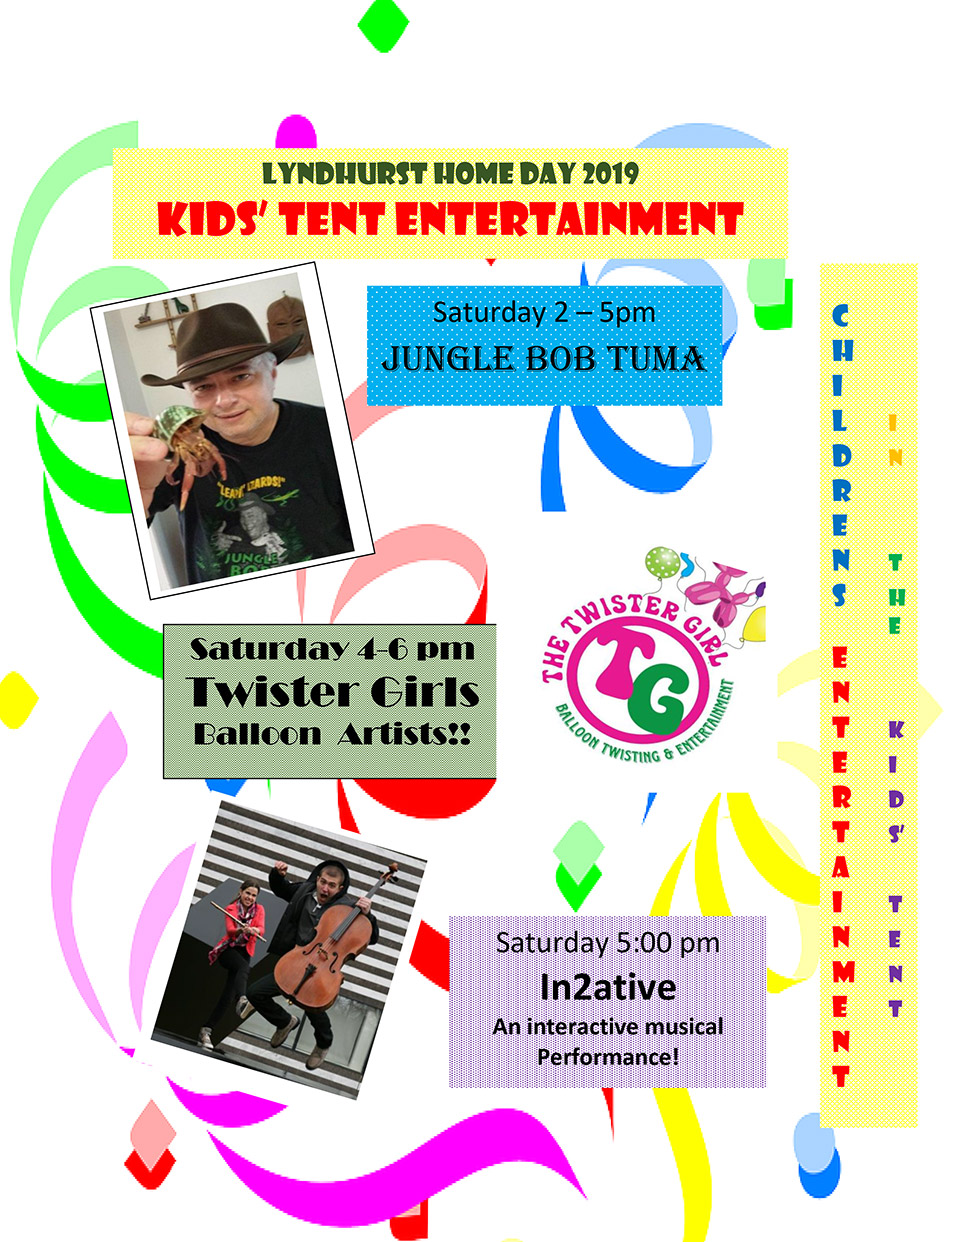 2019 Lyndhurst Home Day Celebration - Entertainment Lineup! - September 6th, 7th, and 8th 2019 - City of Lyndhurst, Ohio